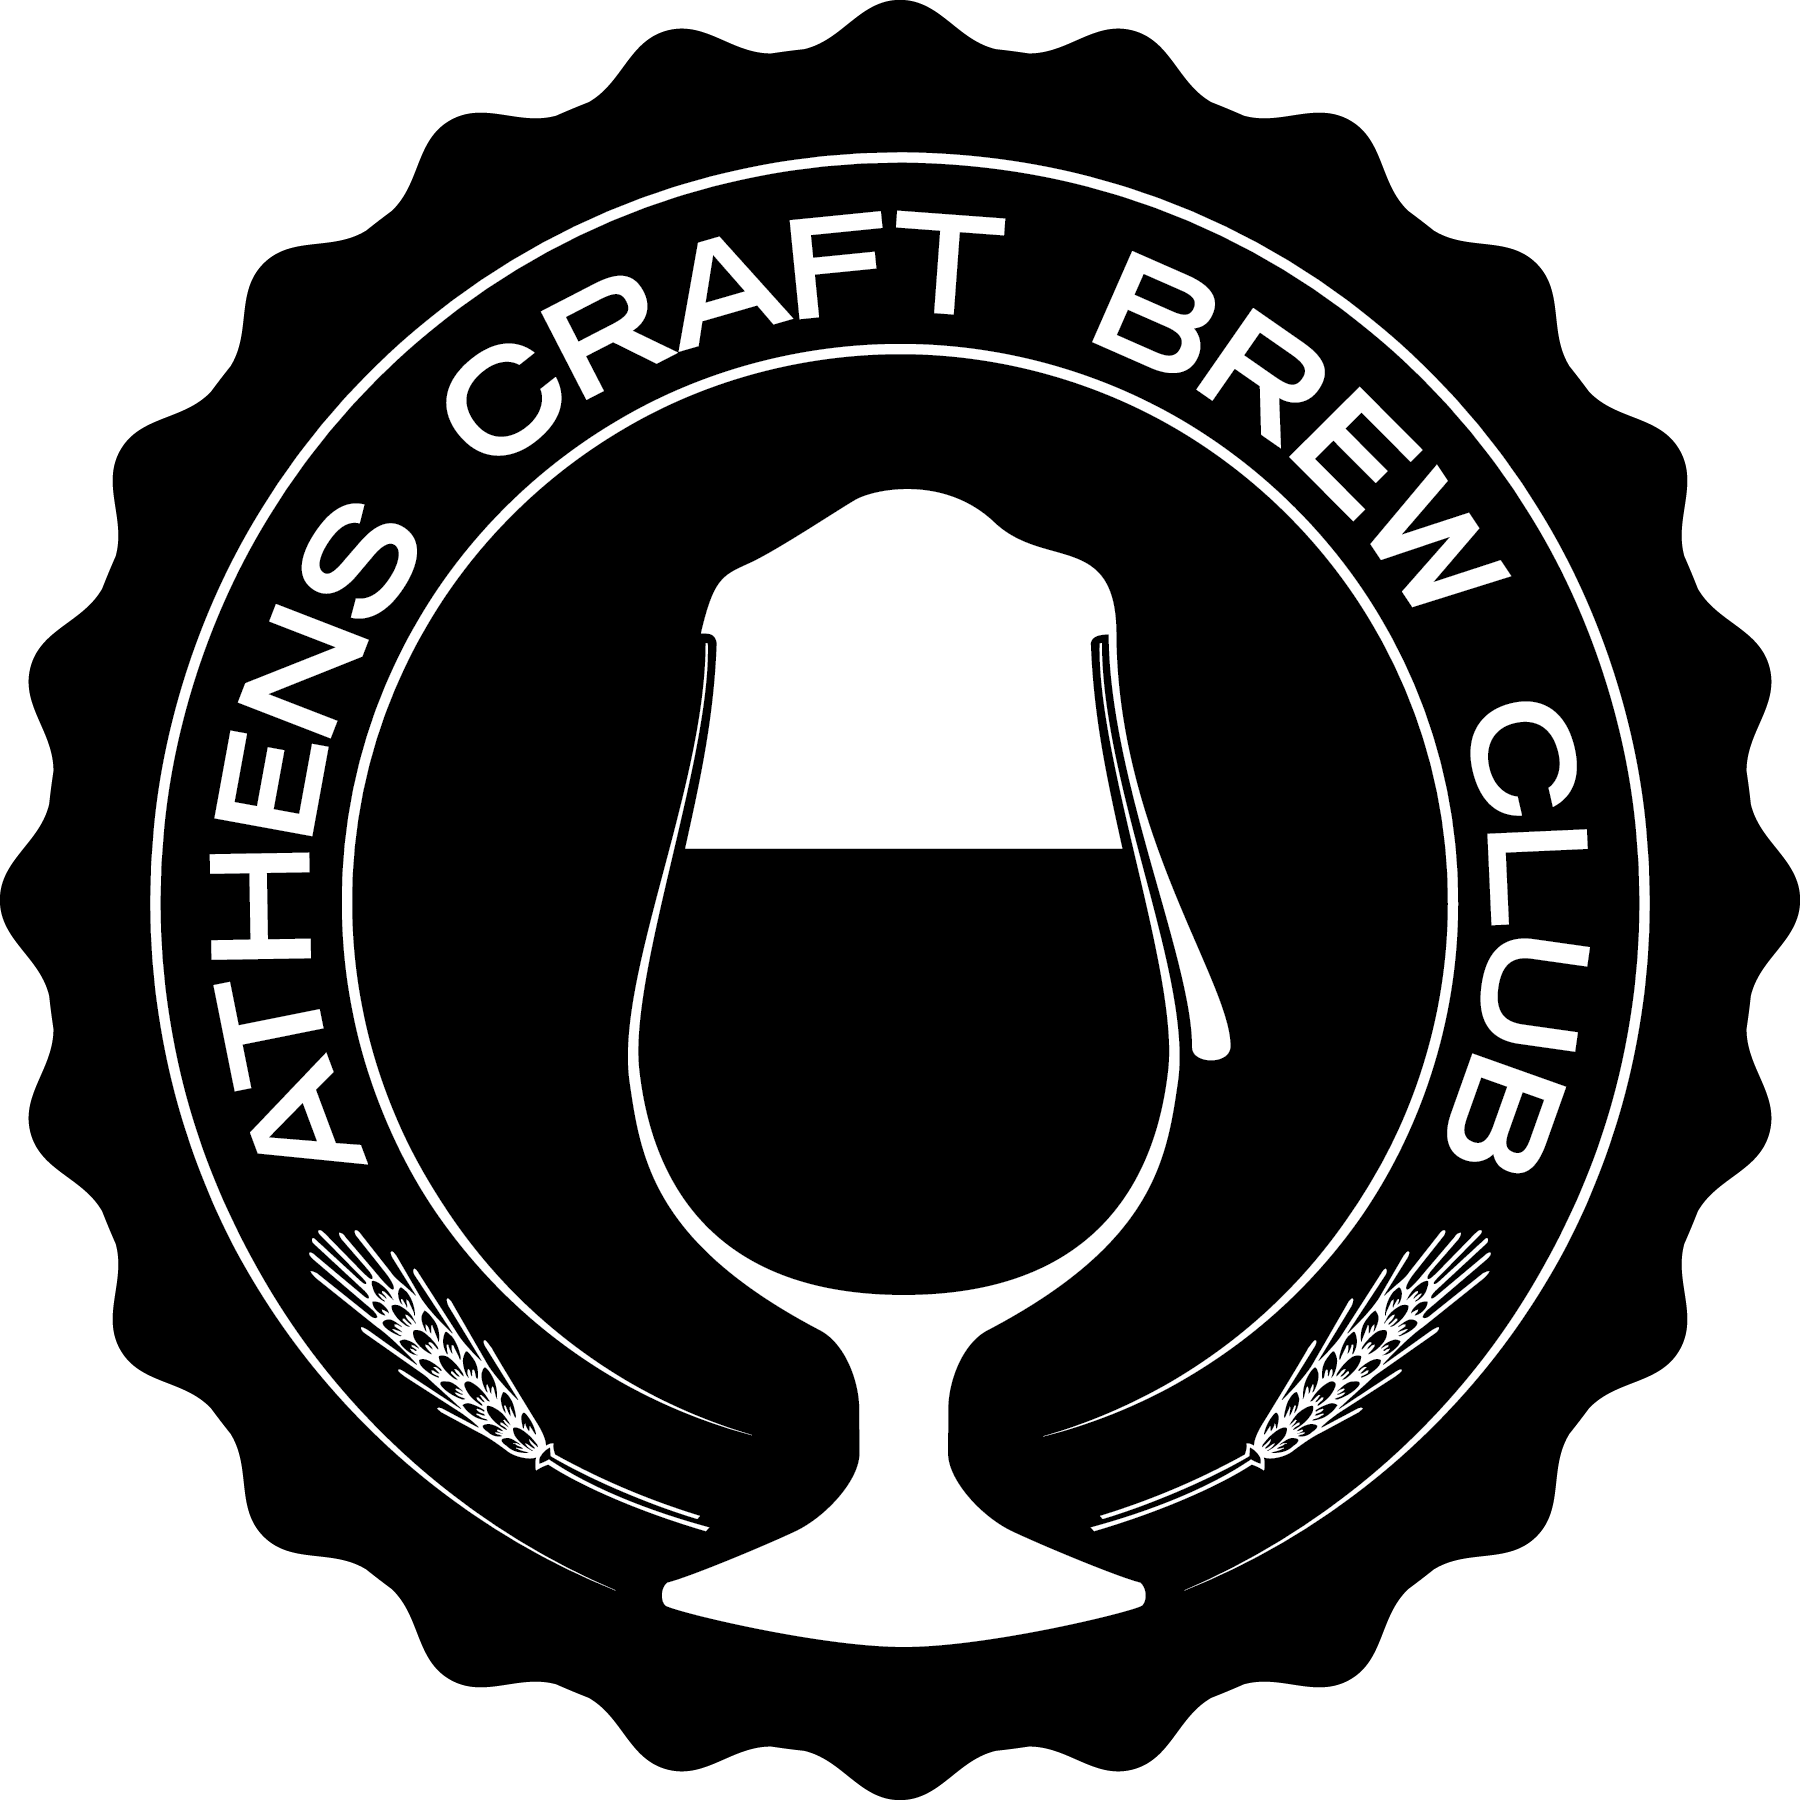 Athens Craft Brew Club